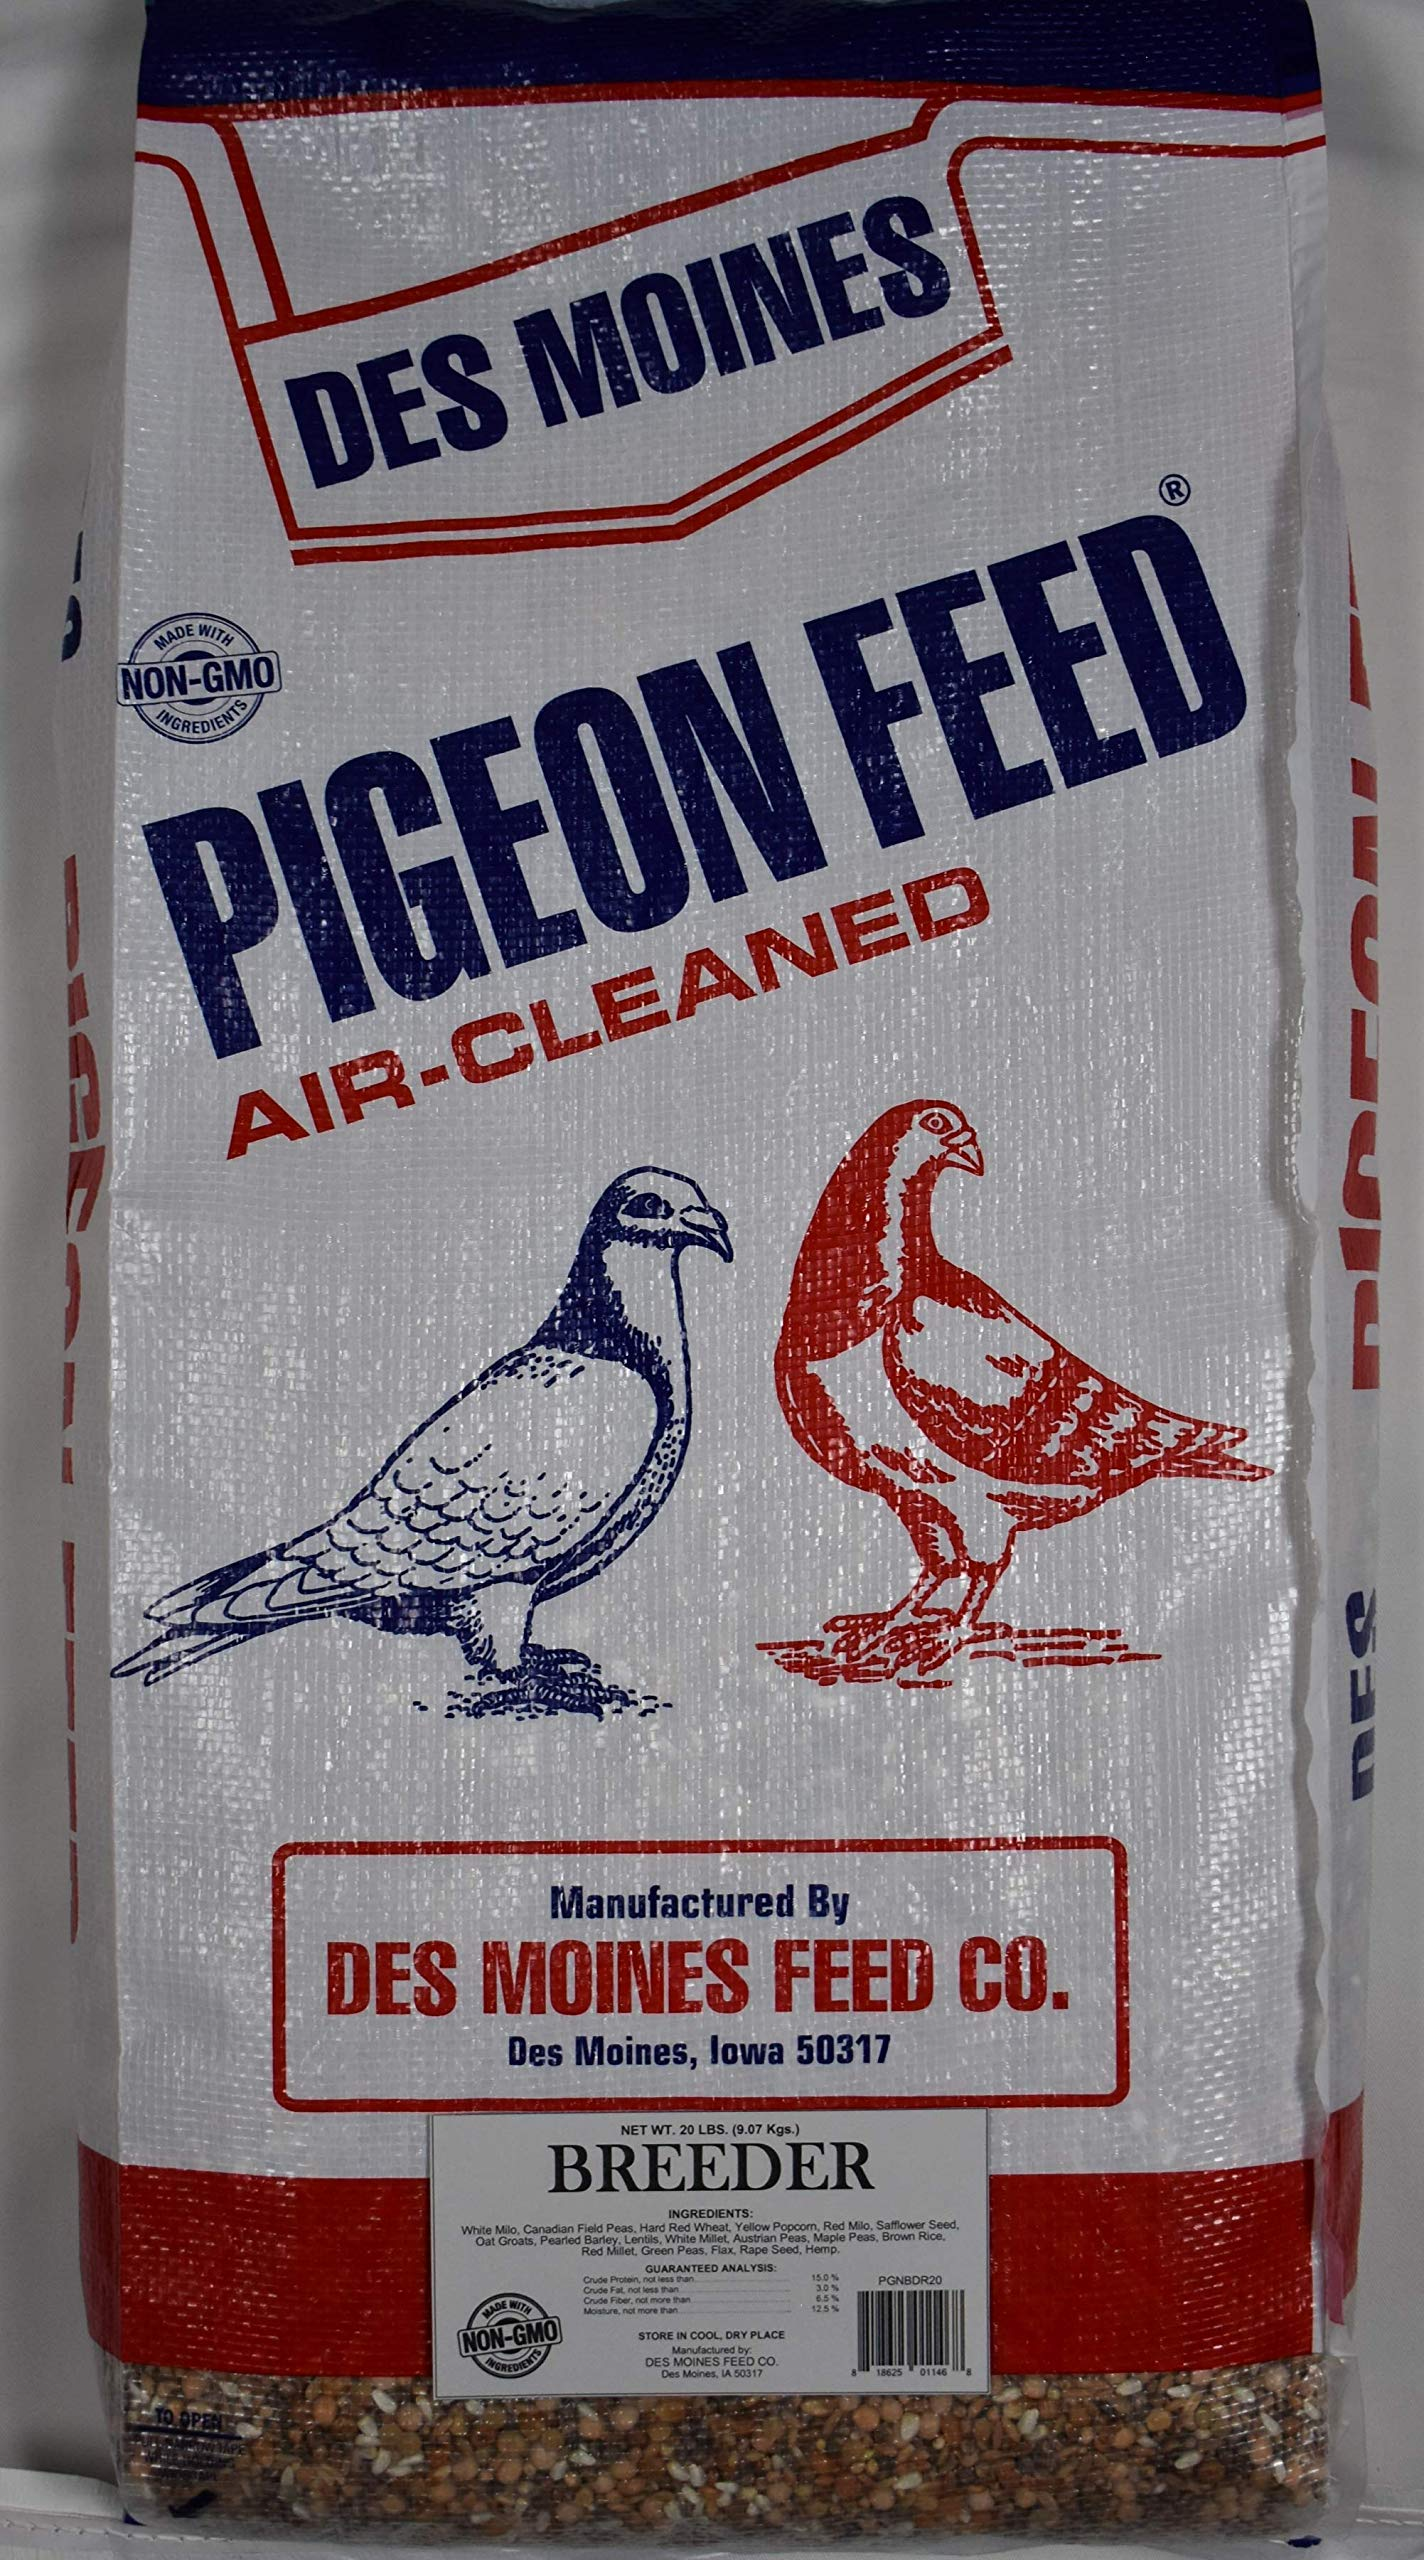 Breeder Pigeon Mix (15%) 20 lbs by Des Moines Pigeon Feed